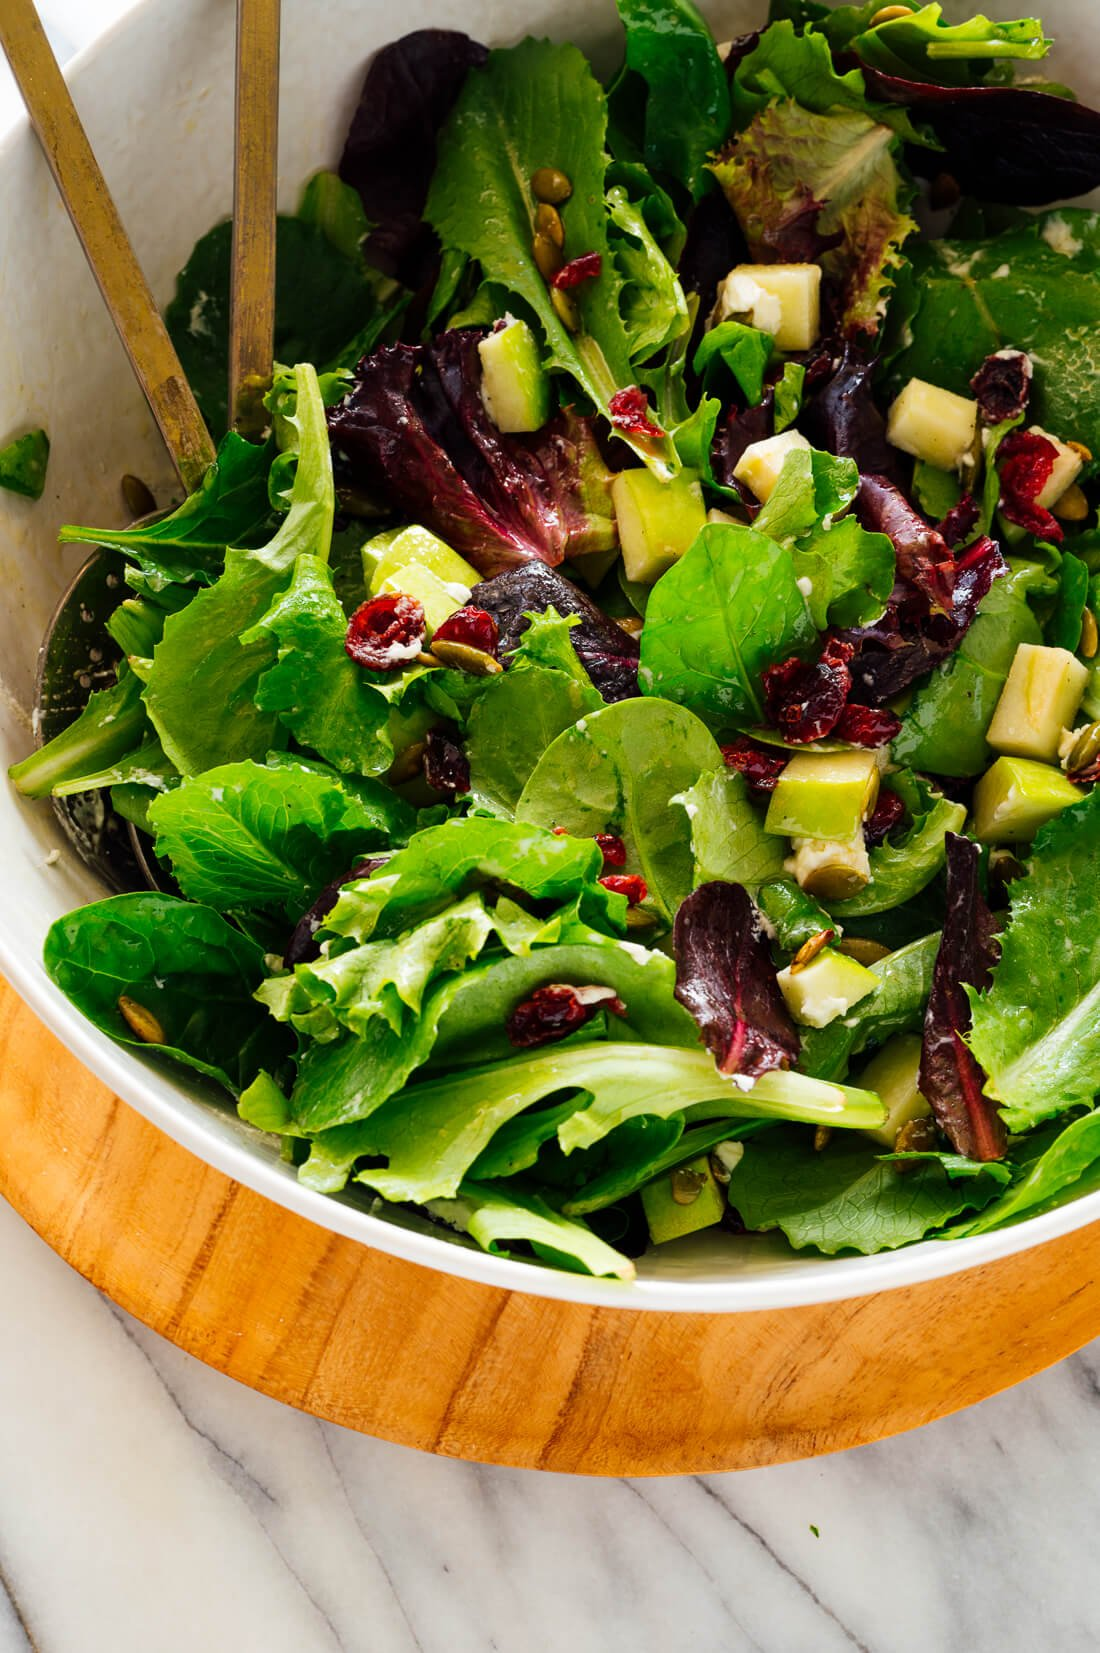 Favorite Green Salad With Apples Cranberries And Pepitas